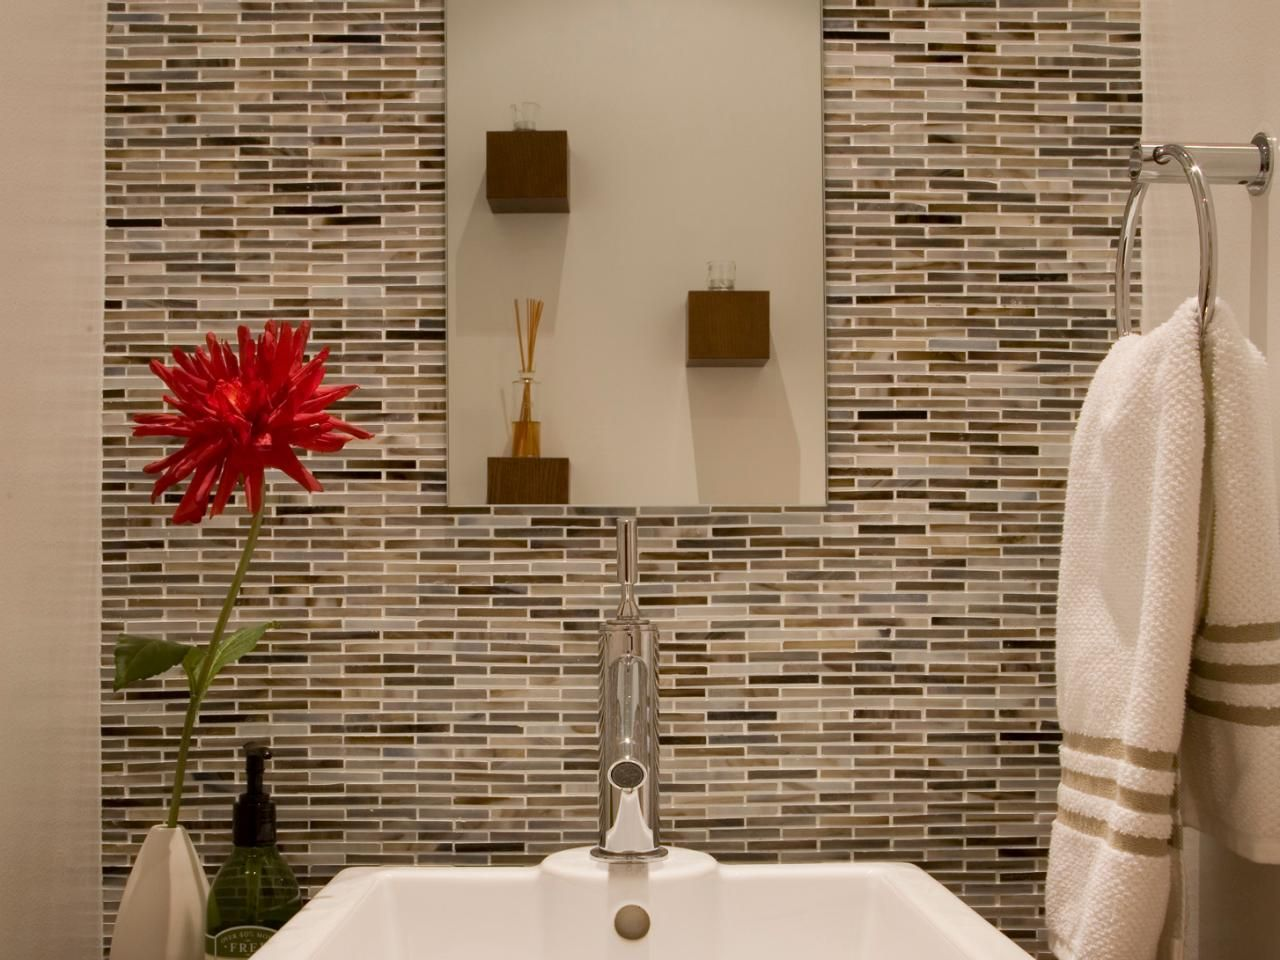 Bathroom Design Zen Style Powder Room Master Bathroom Tile